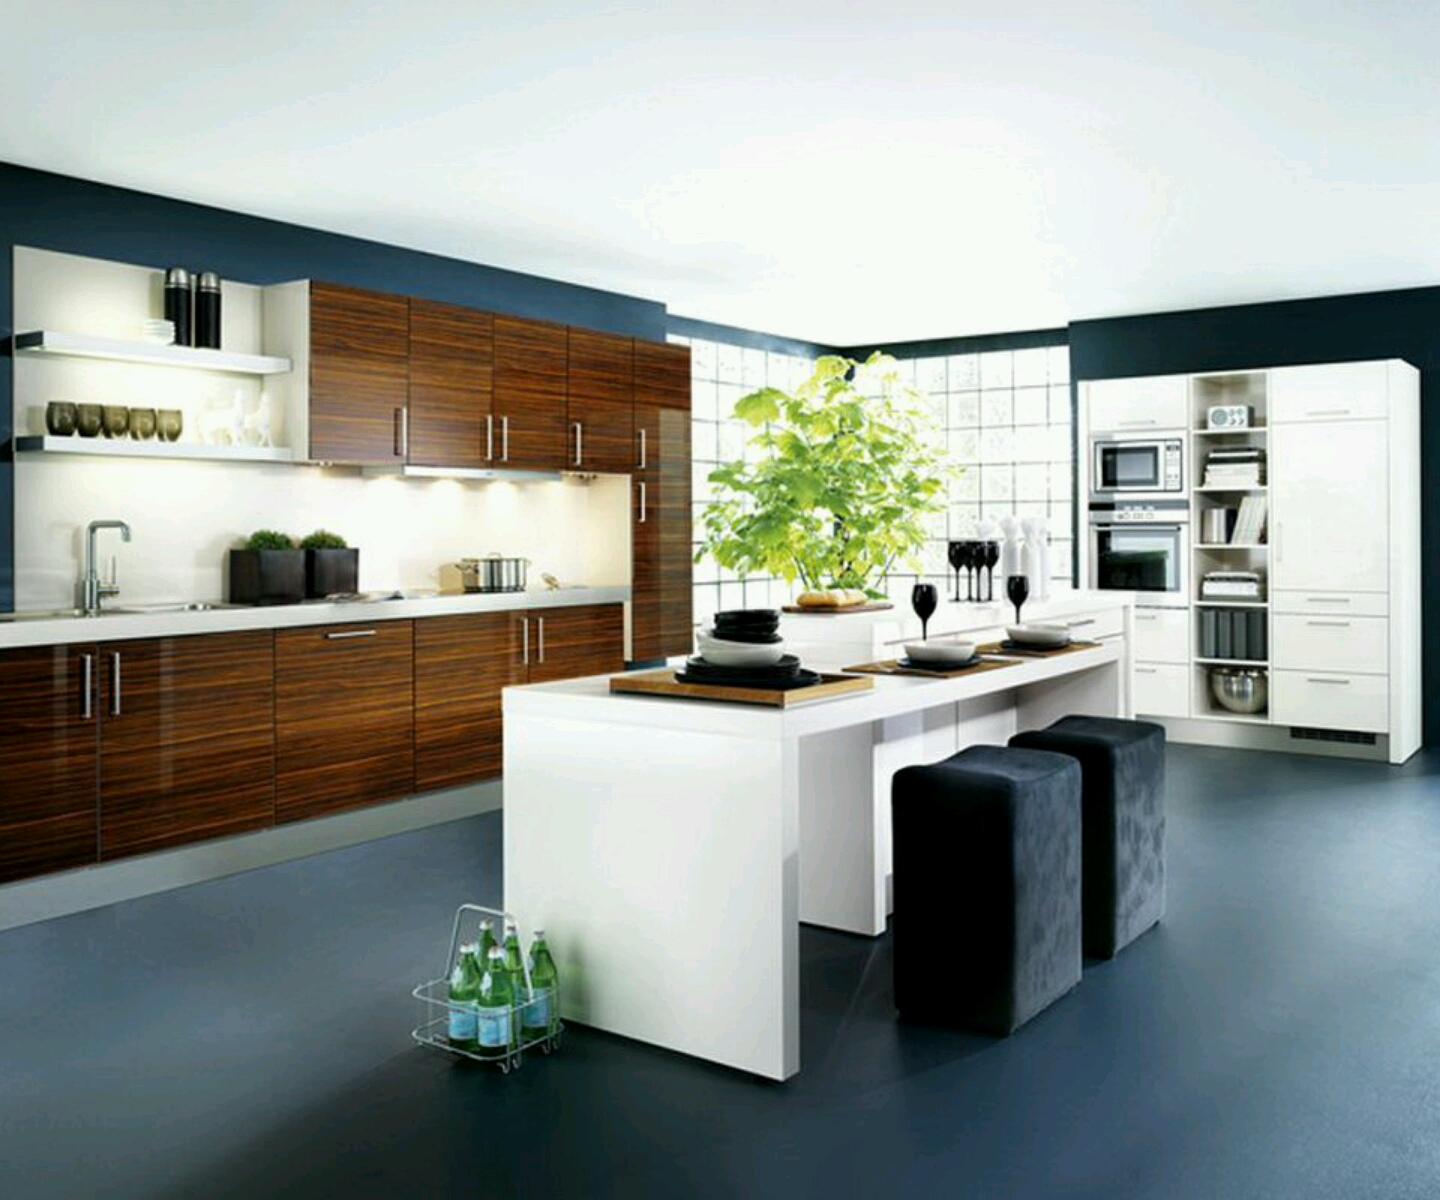 New Home Designs Latest.: Kitchen Cabinets Designs Modern